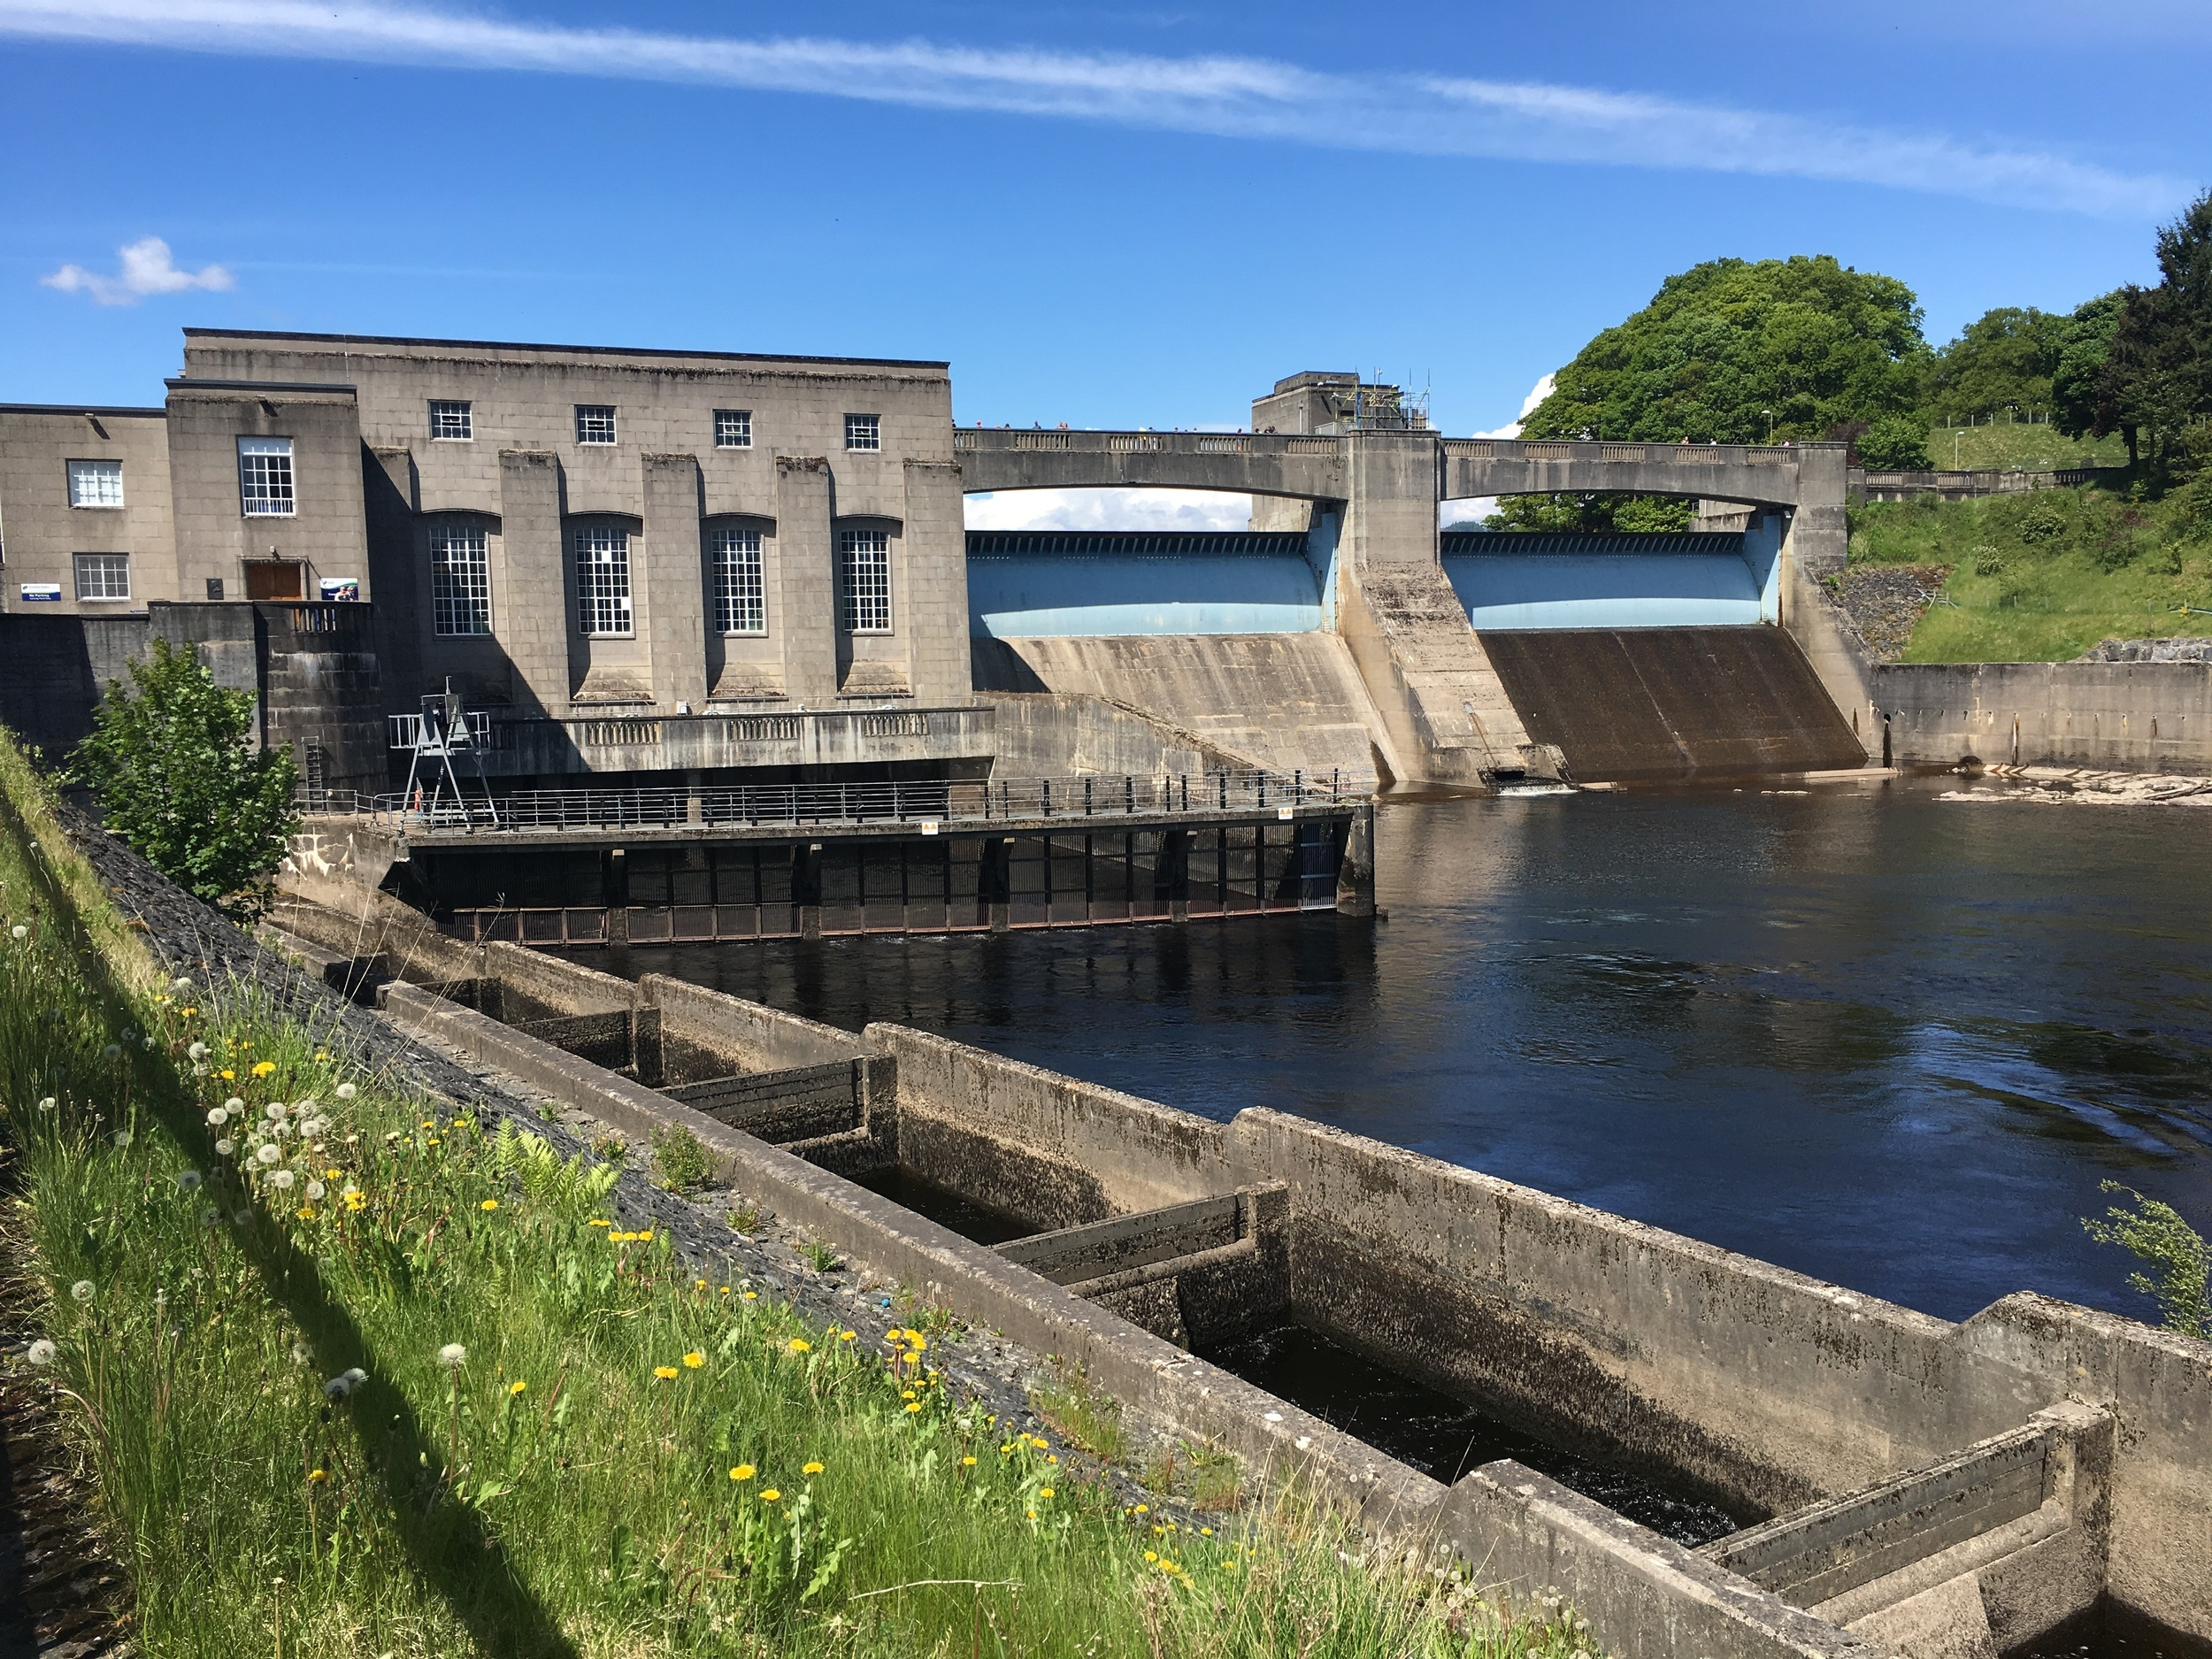 The Pitlochry hydroelectric dam and salmon ladder